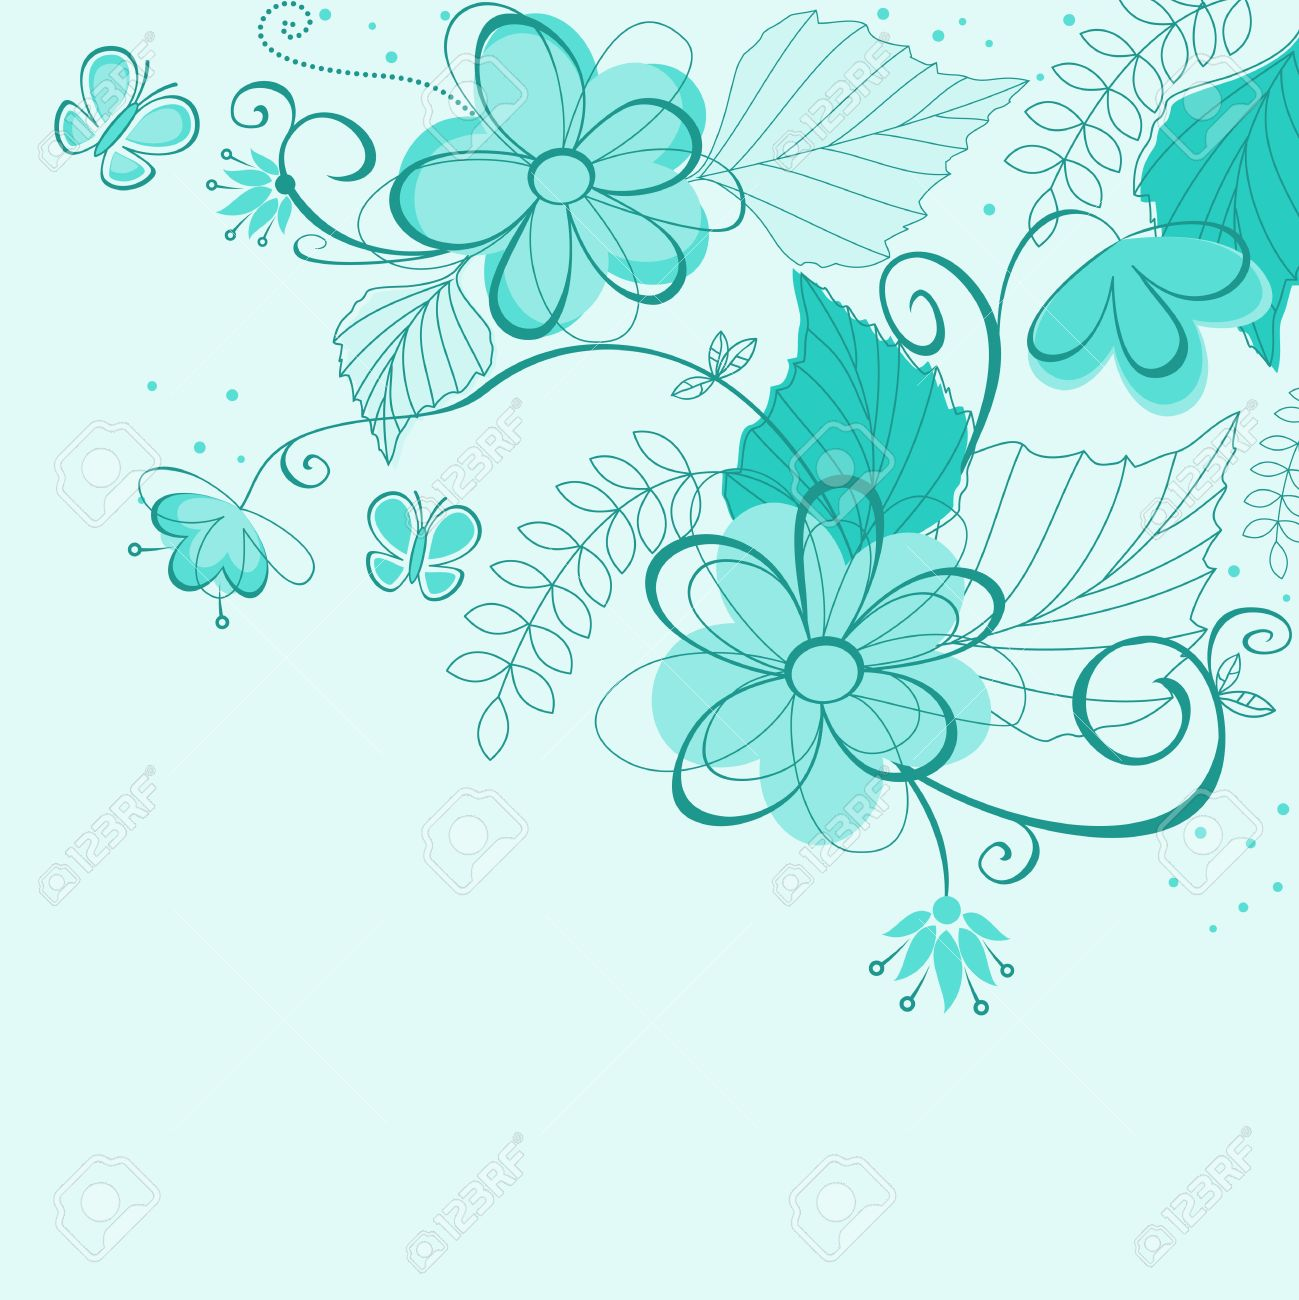 Blue Abstract Floral Background For Textile Or Invitation Card